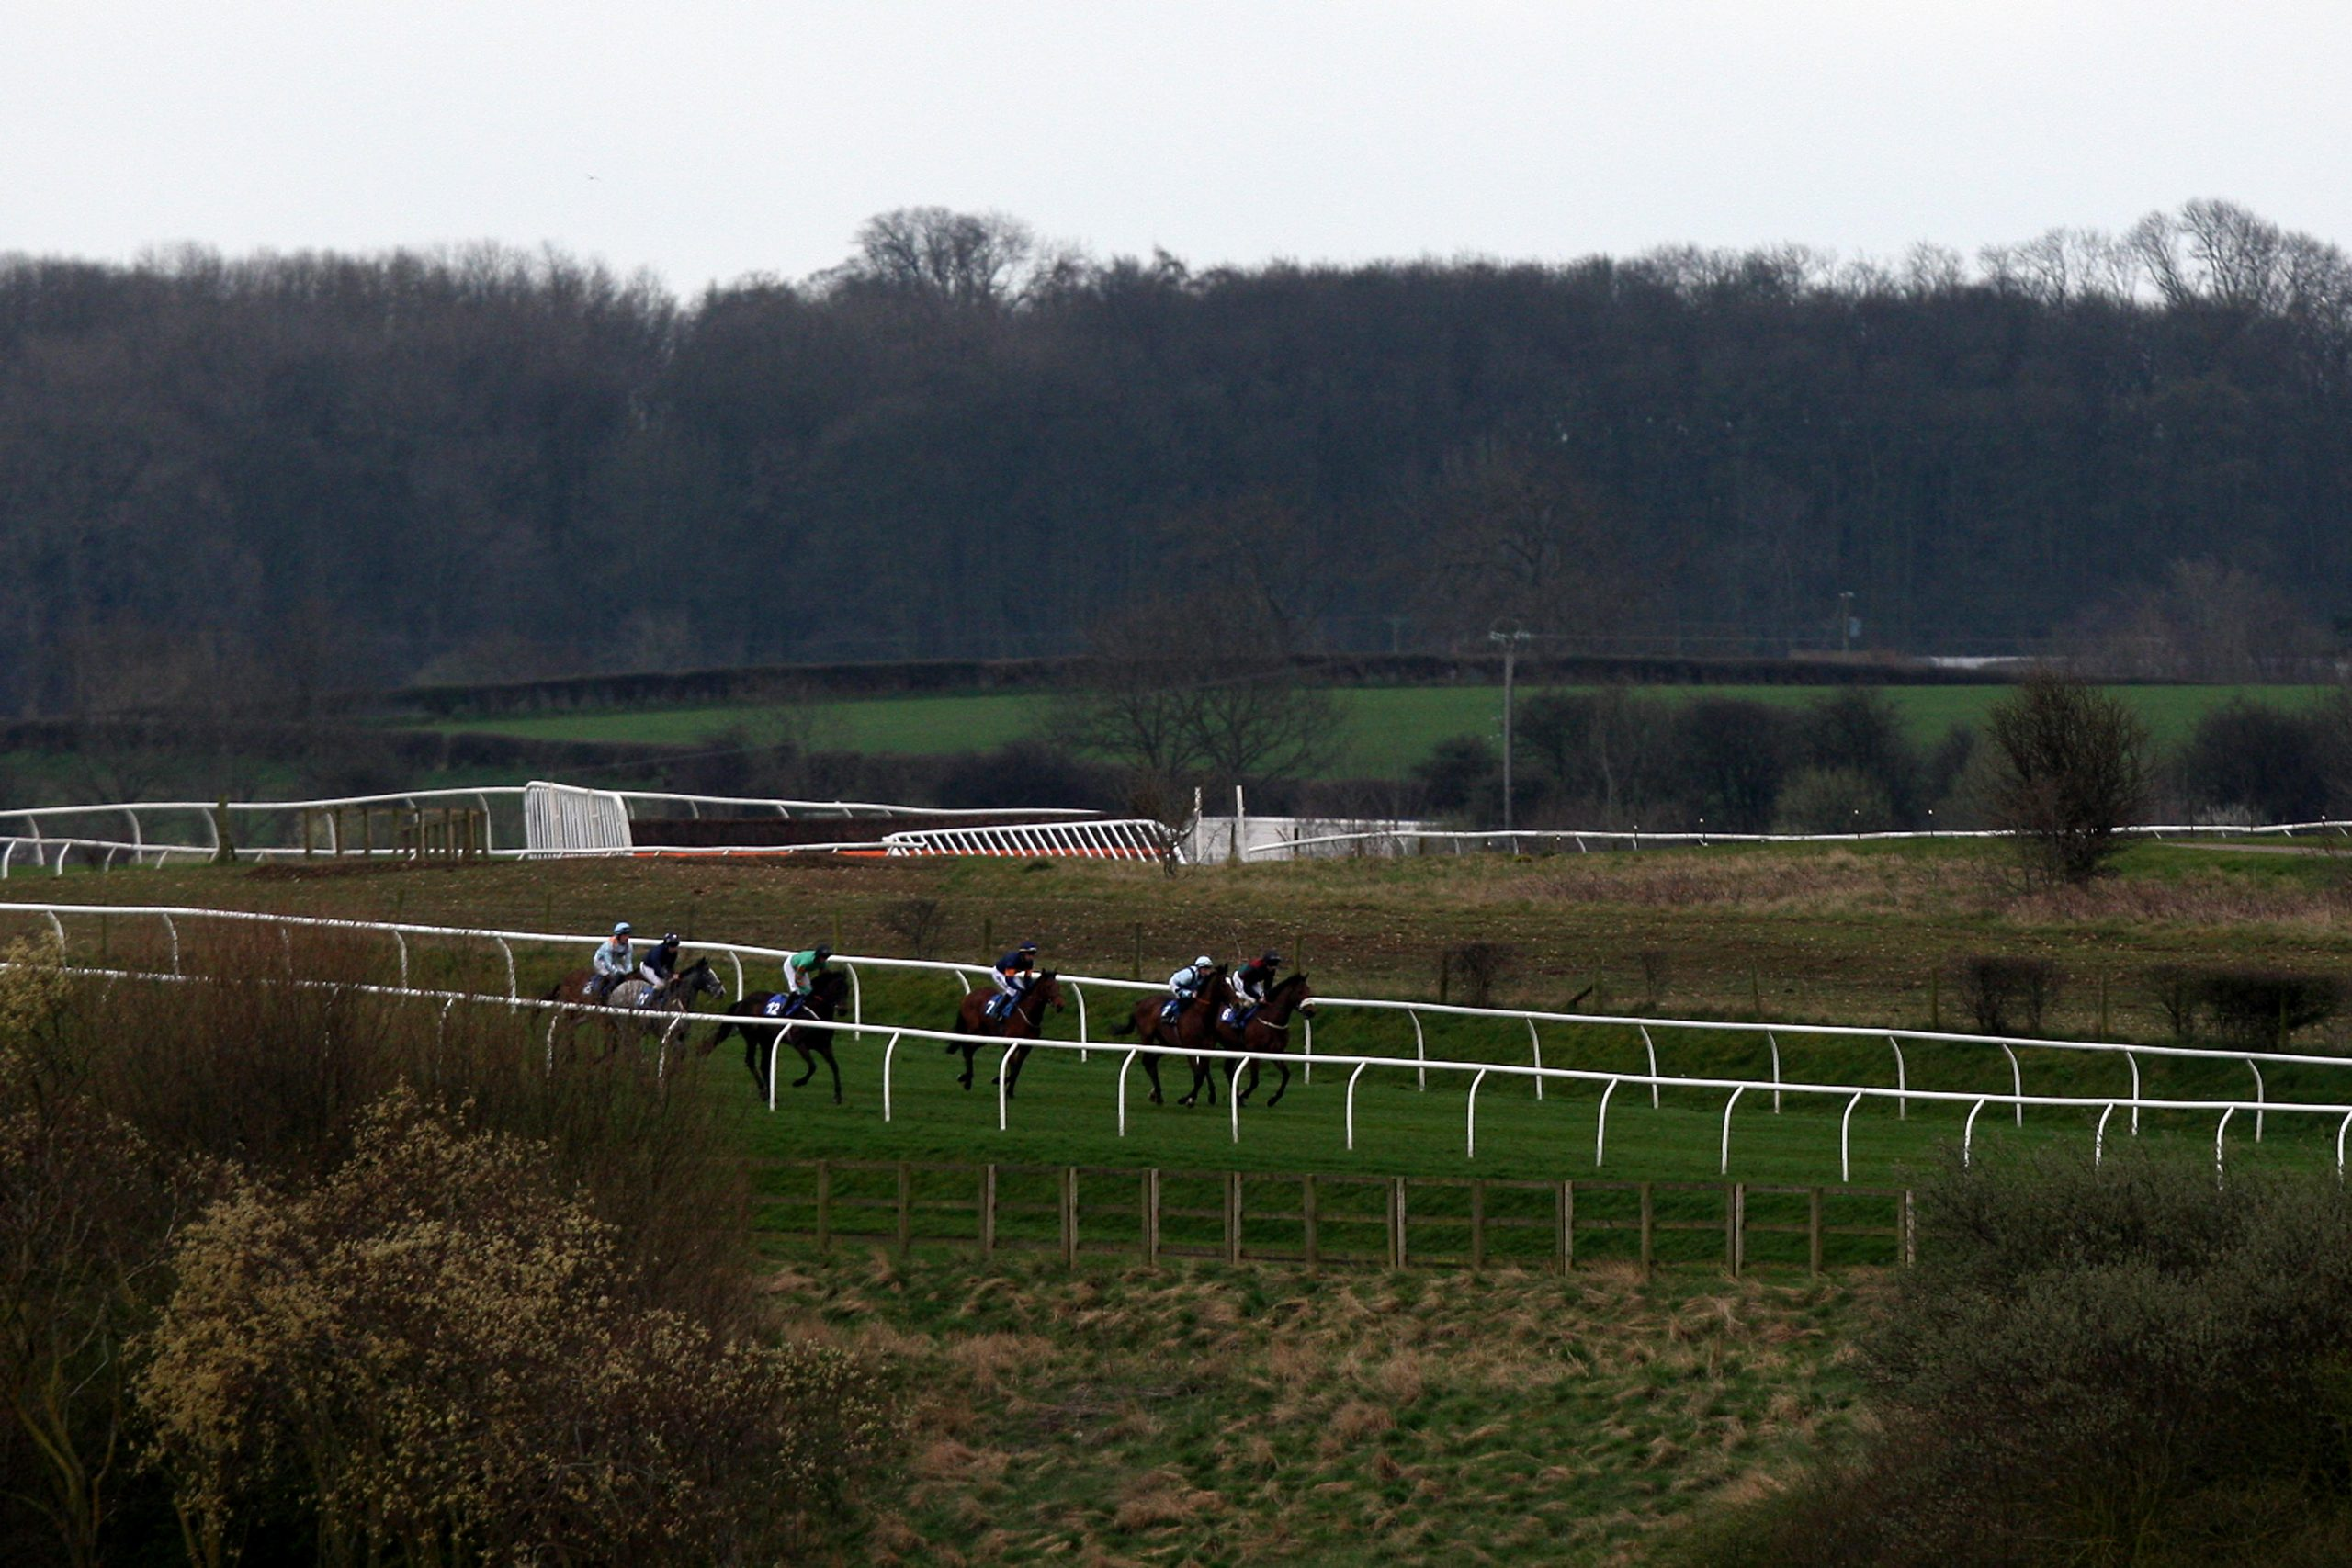 Runners and riders in the William Hill Maiden Stakes make their way around Catterick Racecourse